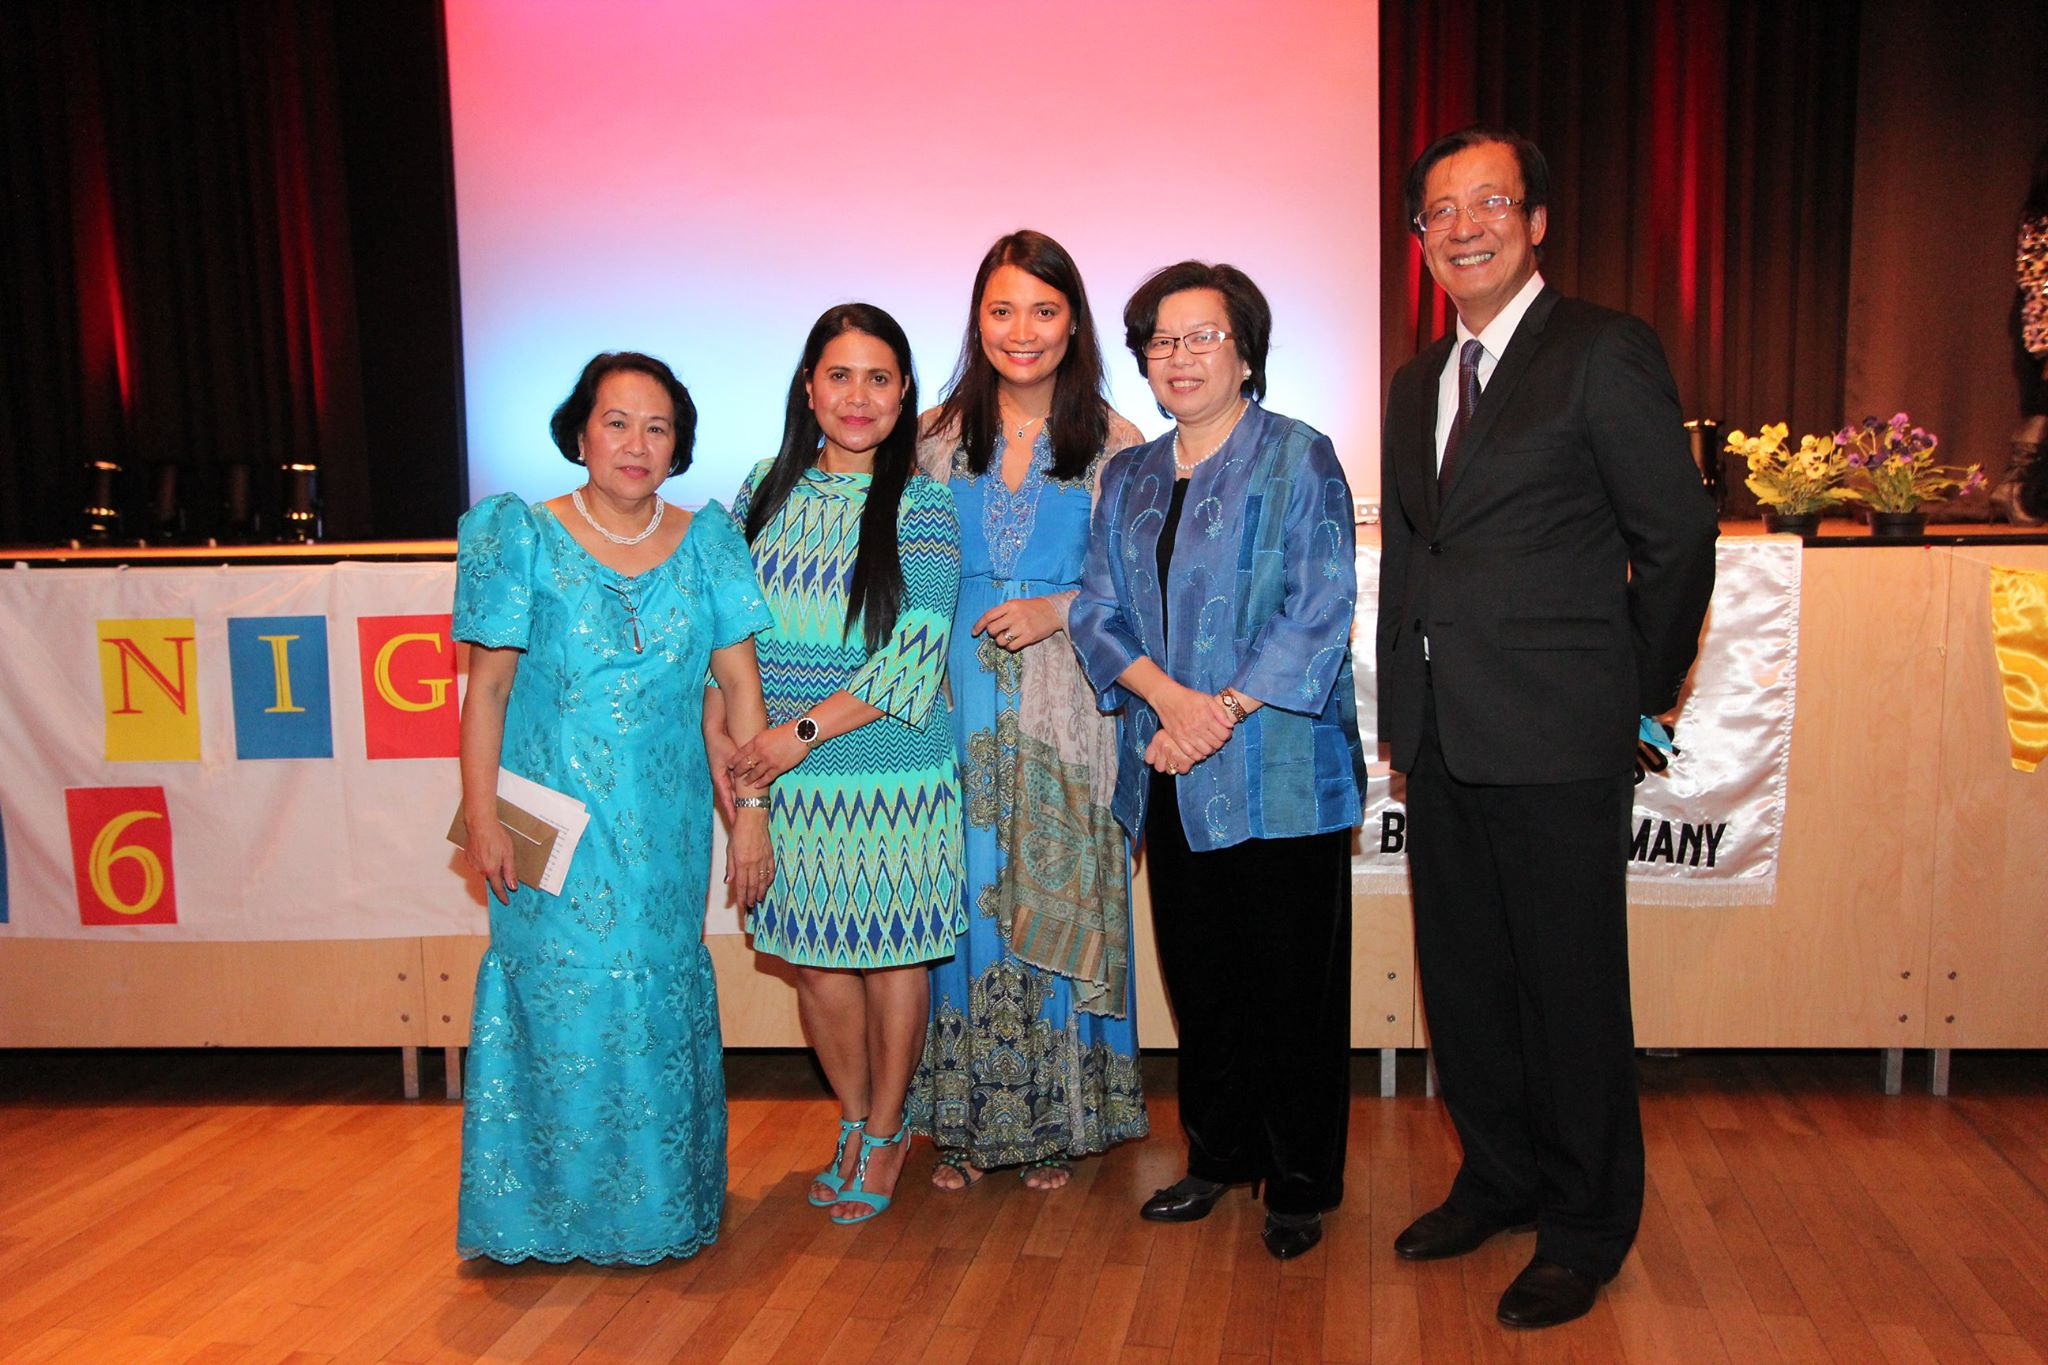 Philippine Ambassador Melita S. Sta. Maria-Thomeczek (second from right) with members of Club Bol-Anon, e.V. headed by Mrs. Veronica Boensch (leftmost)